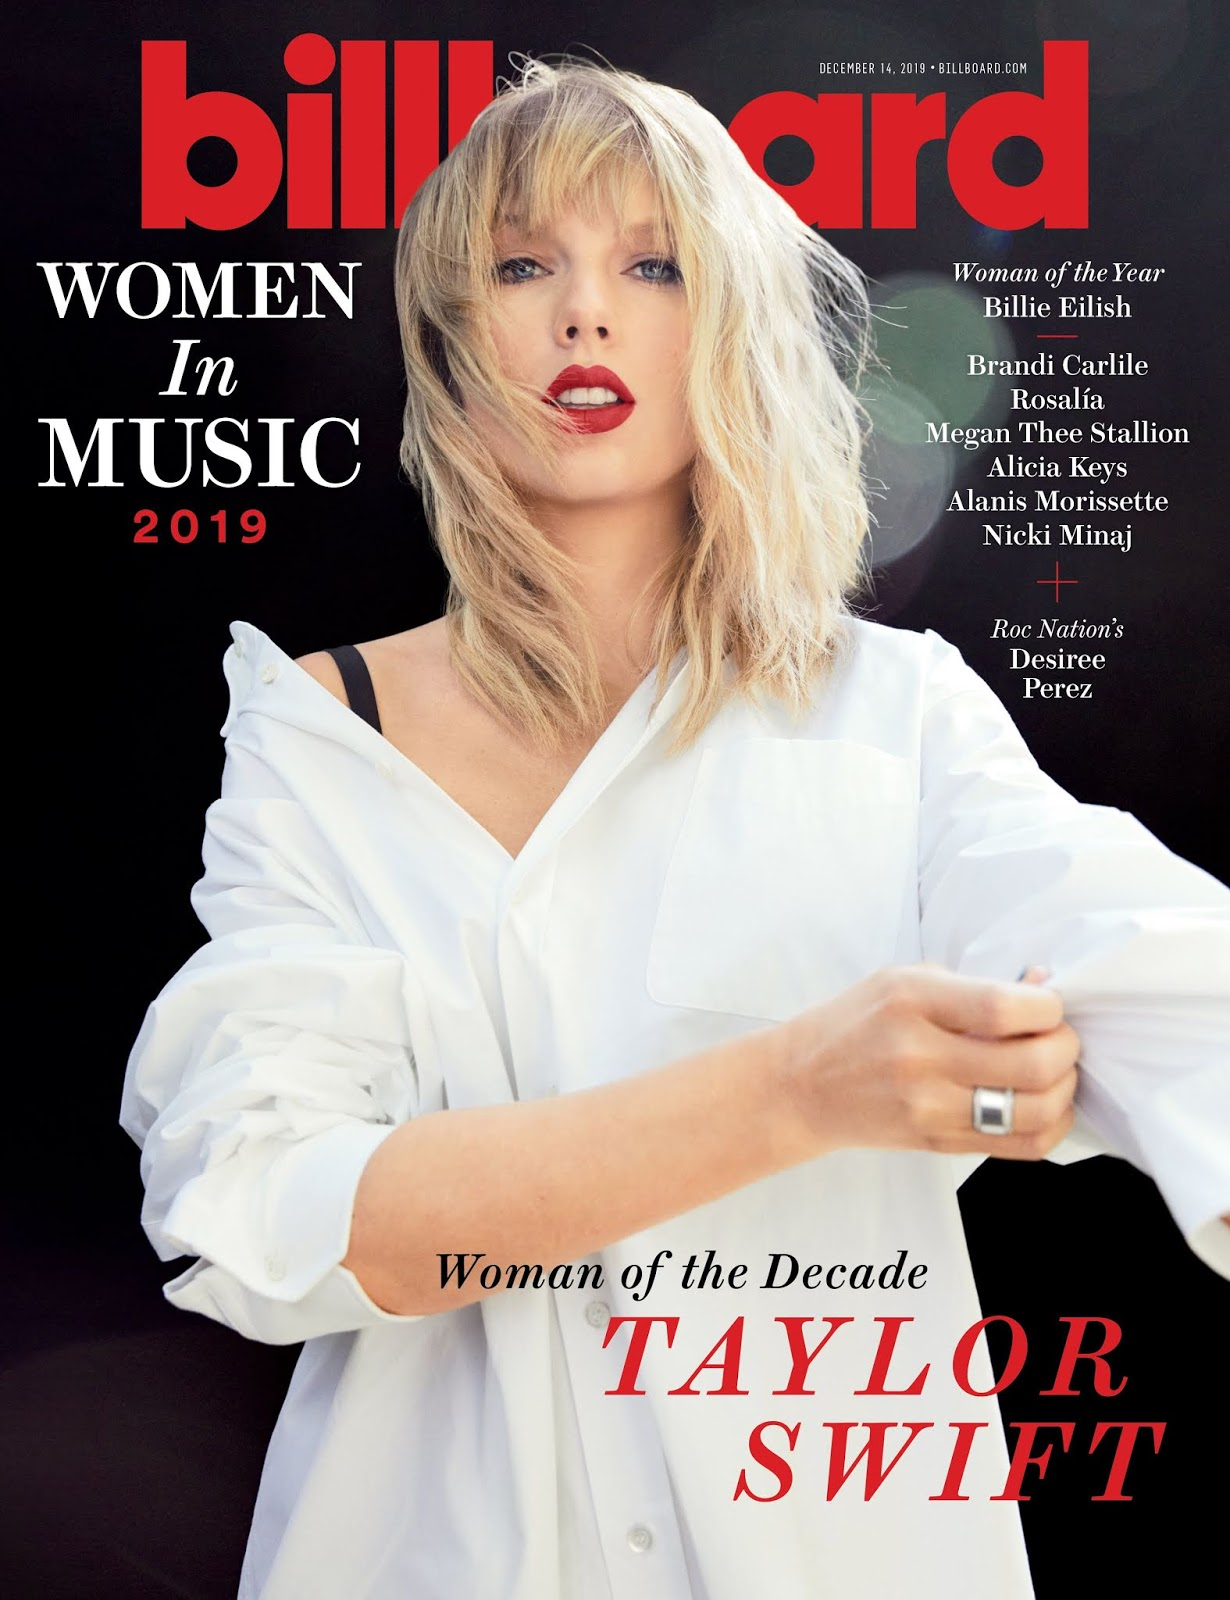 Taylor Swift is Billboard's Woman of the Decade